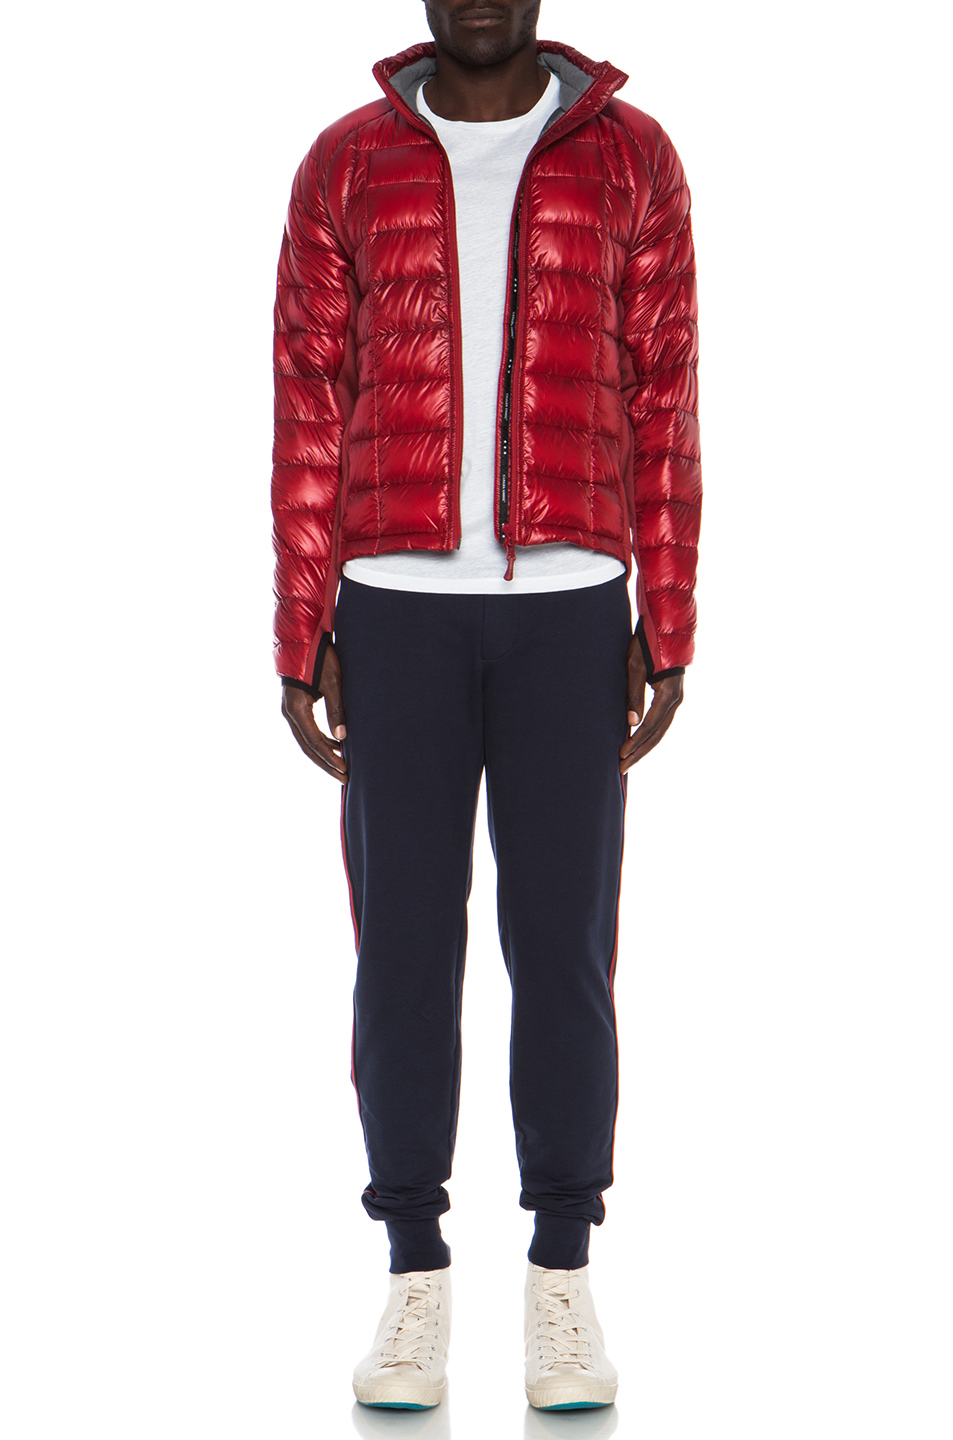 019ec3dc0106 ... coupon code lyst canada goose hybridge lite nylon jacket in red 72674  e4a9d